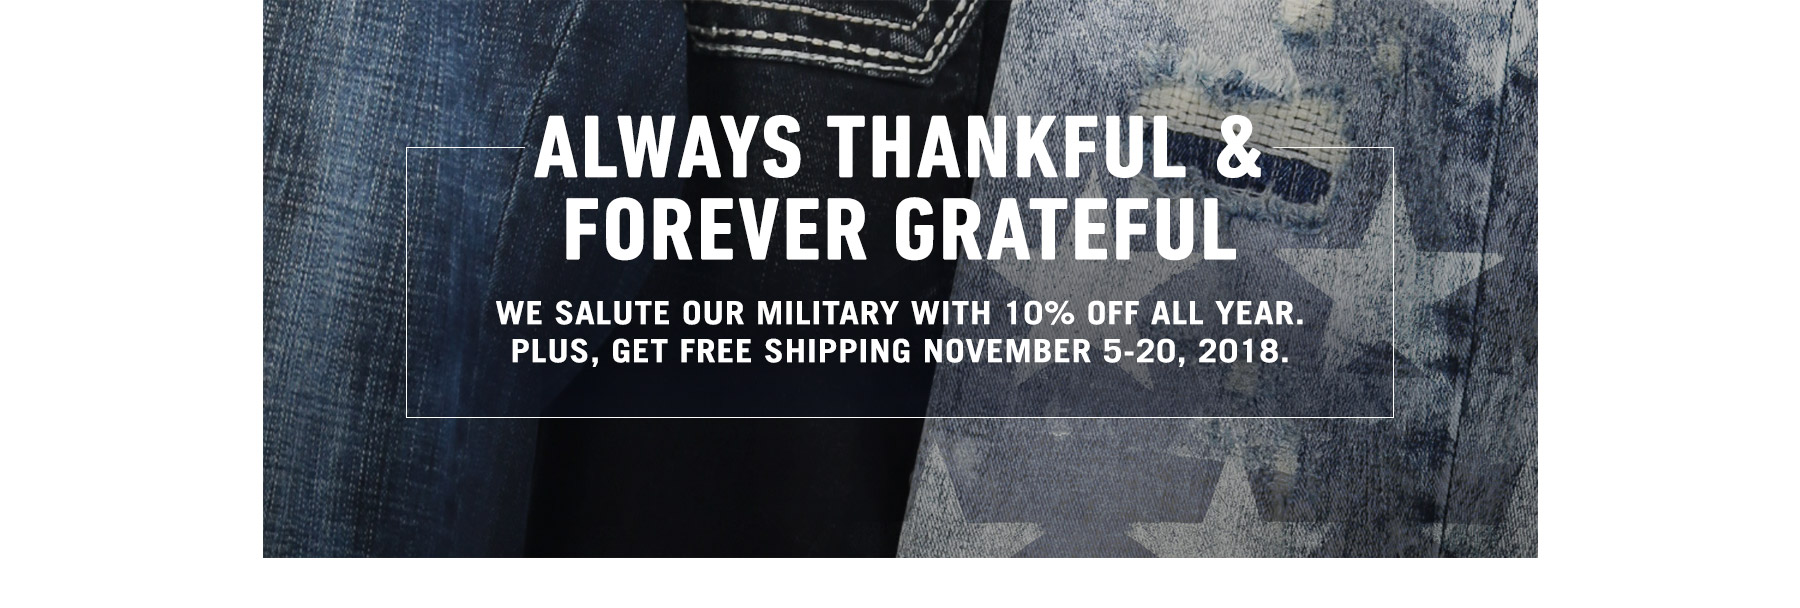 Verified Military Accounts receive Free Shipping at Buckle from November 5 - 20, 2018.